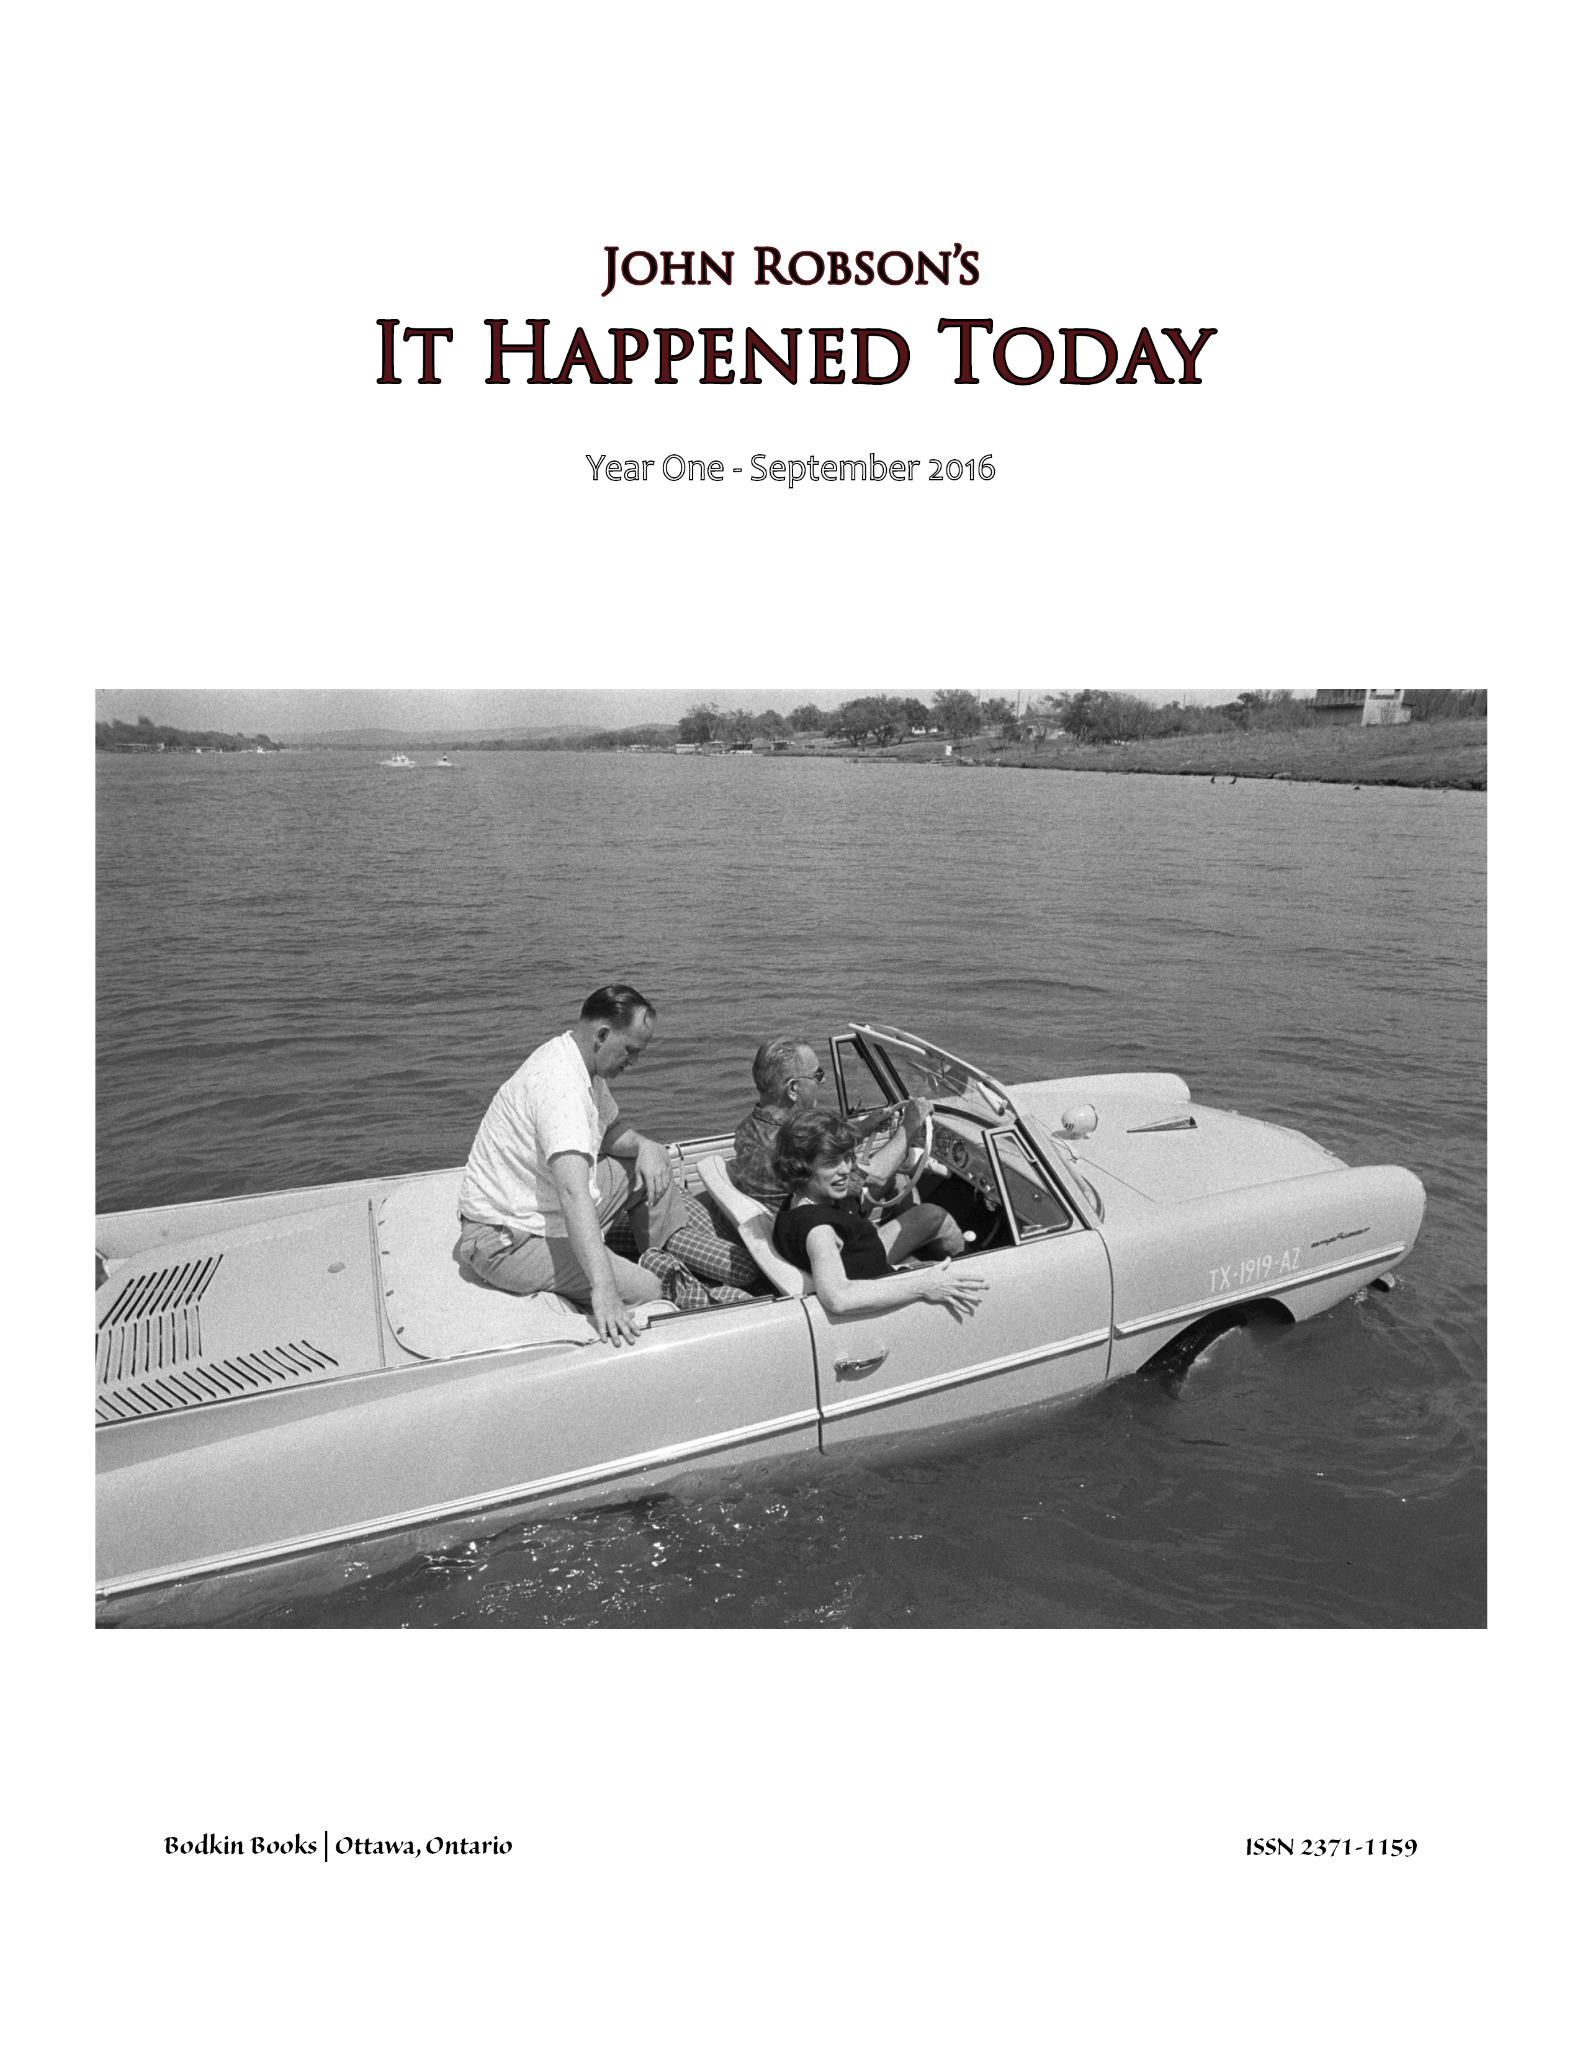 John Robson's It Happened Today - Year One - September